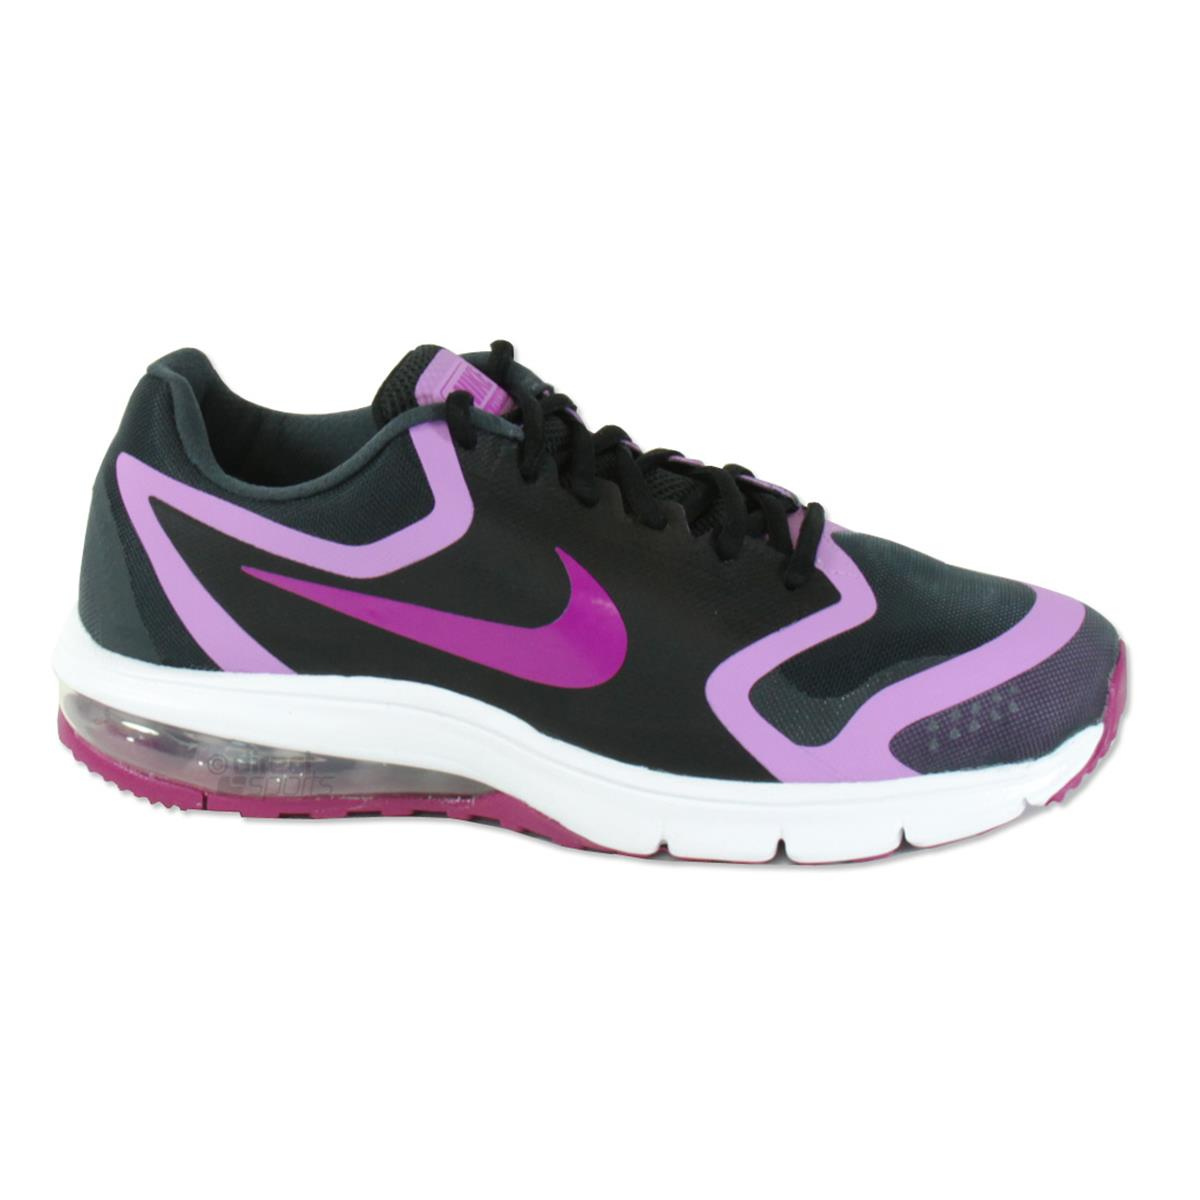 45bea07b8ce31 Nike Air Max Premiere Womens Running Shoes | Direct Running